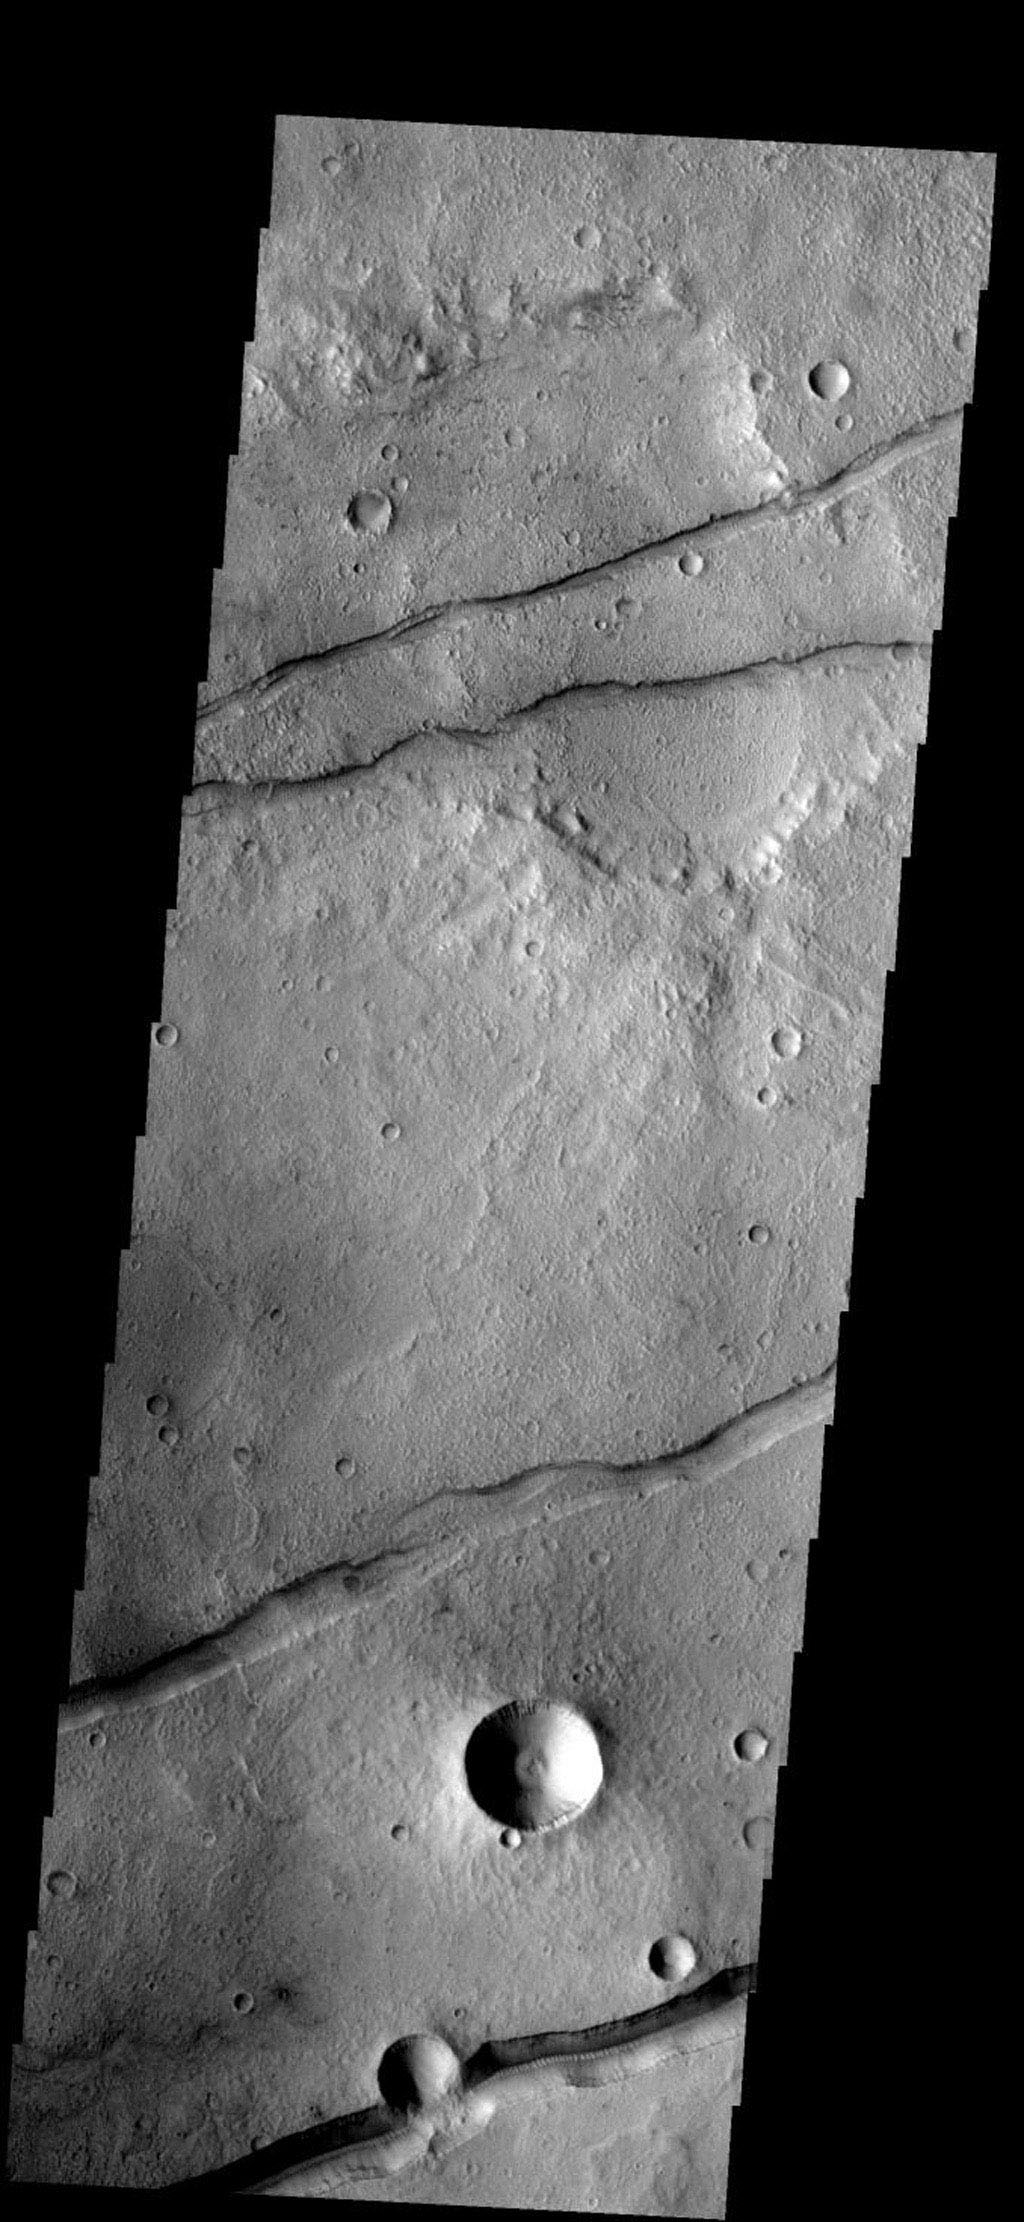 These fractures and graben are part of Sirenum Fossae on Mars as seen by NASA's 2001 Mars Odyssey spacecraft.